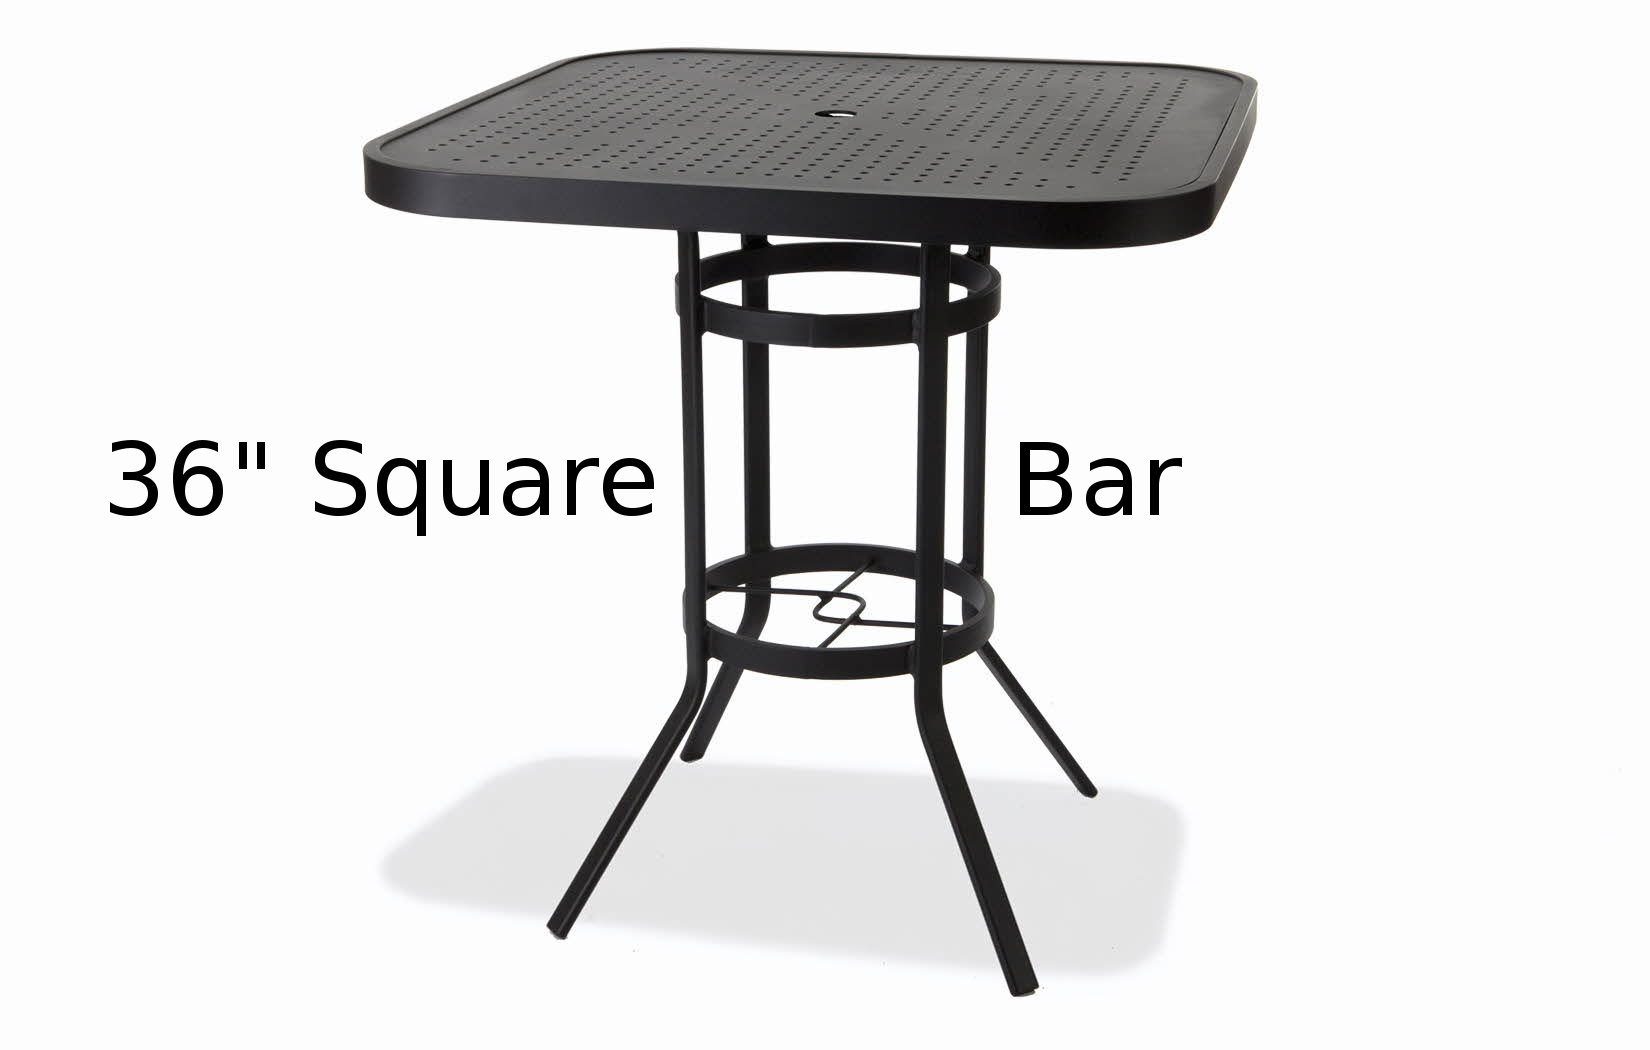 M8136-HSTUQ  Matrix Stamped Aluminum 36 Inch Round Bar Height Table